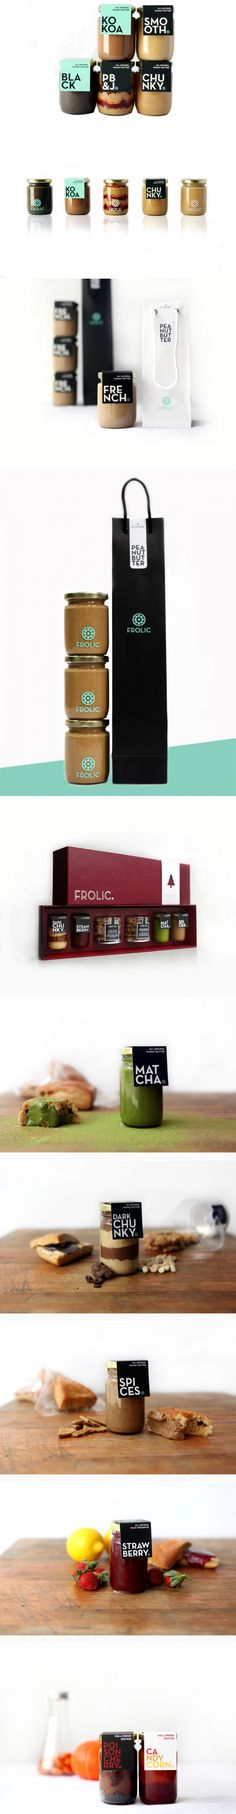 FROLIC — The Dieline | Packaging & Branding Design & Innovation News